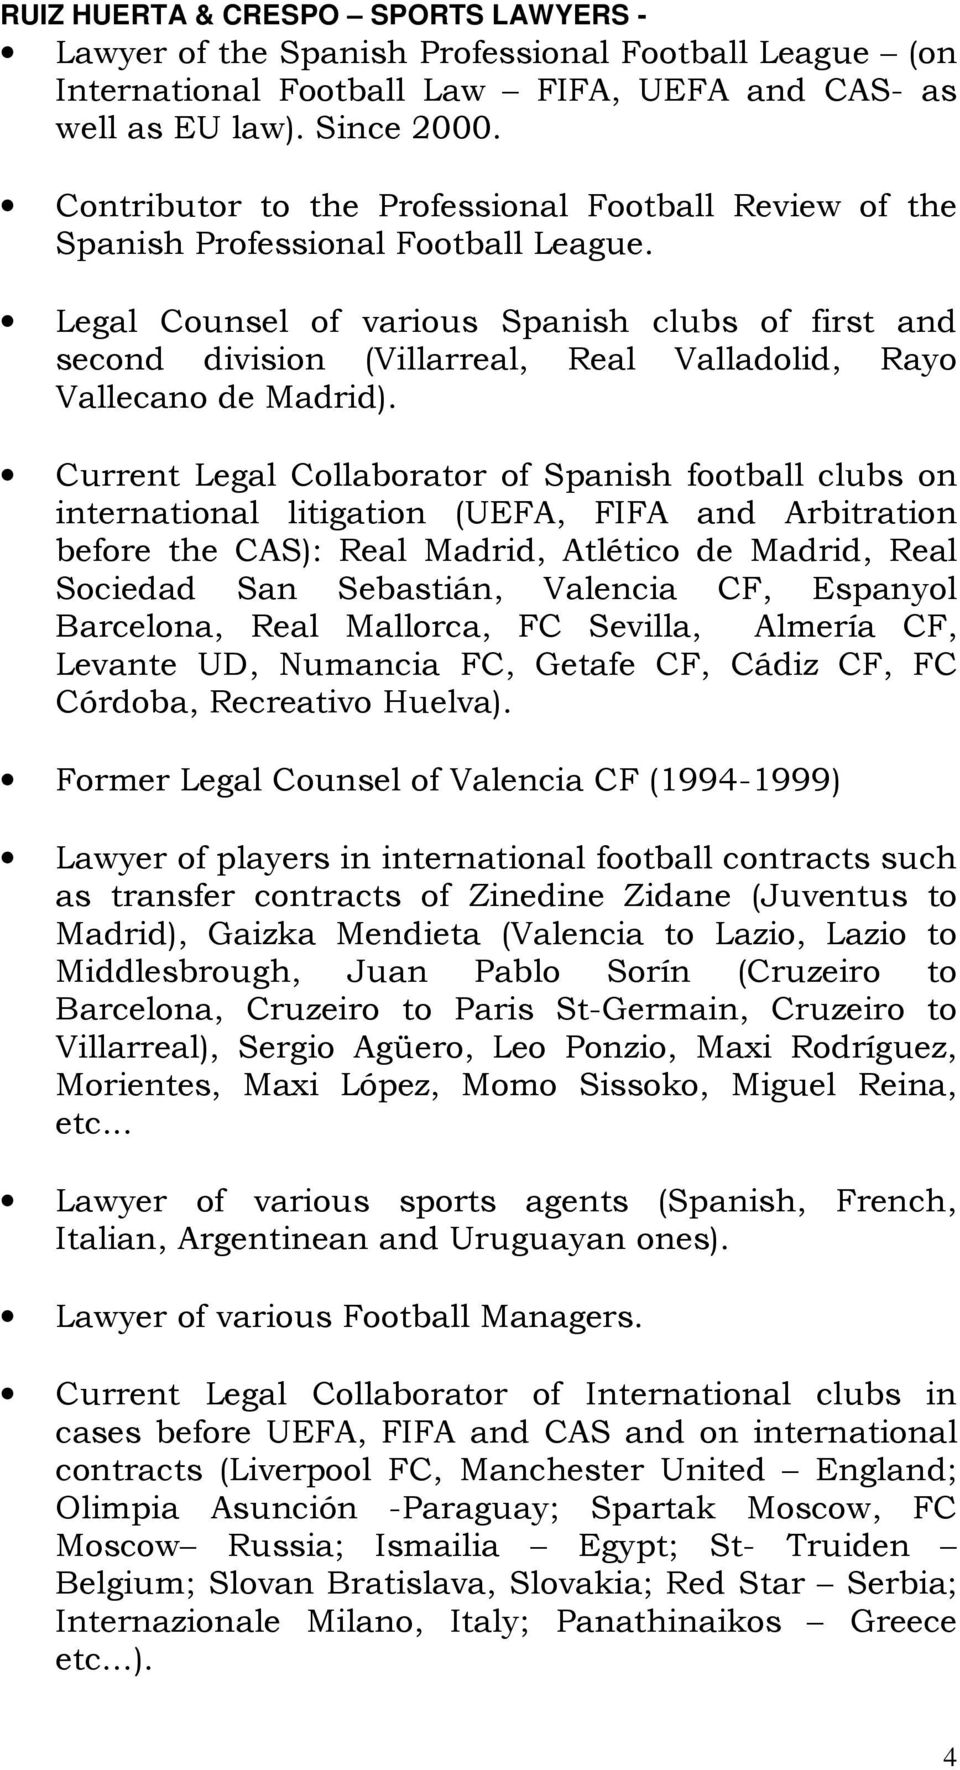 Legal Counsel of various Spanish clubs of first and second division (Villarreal, Real Valladolid, Rayo Vallecano de Madrid).